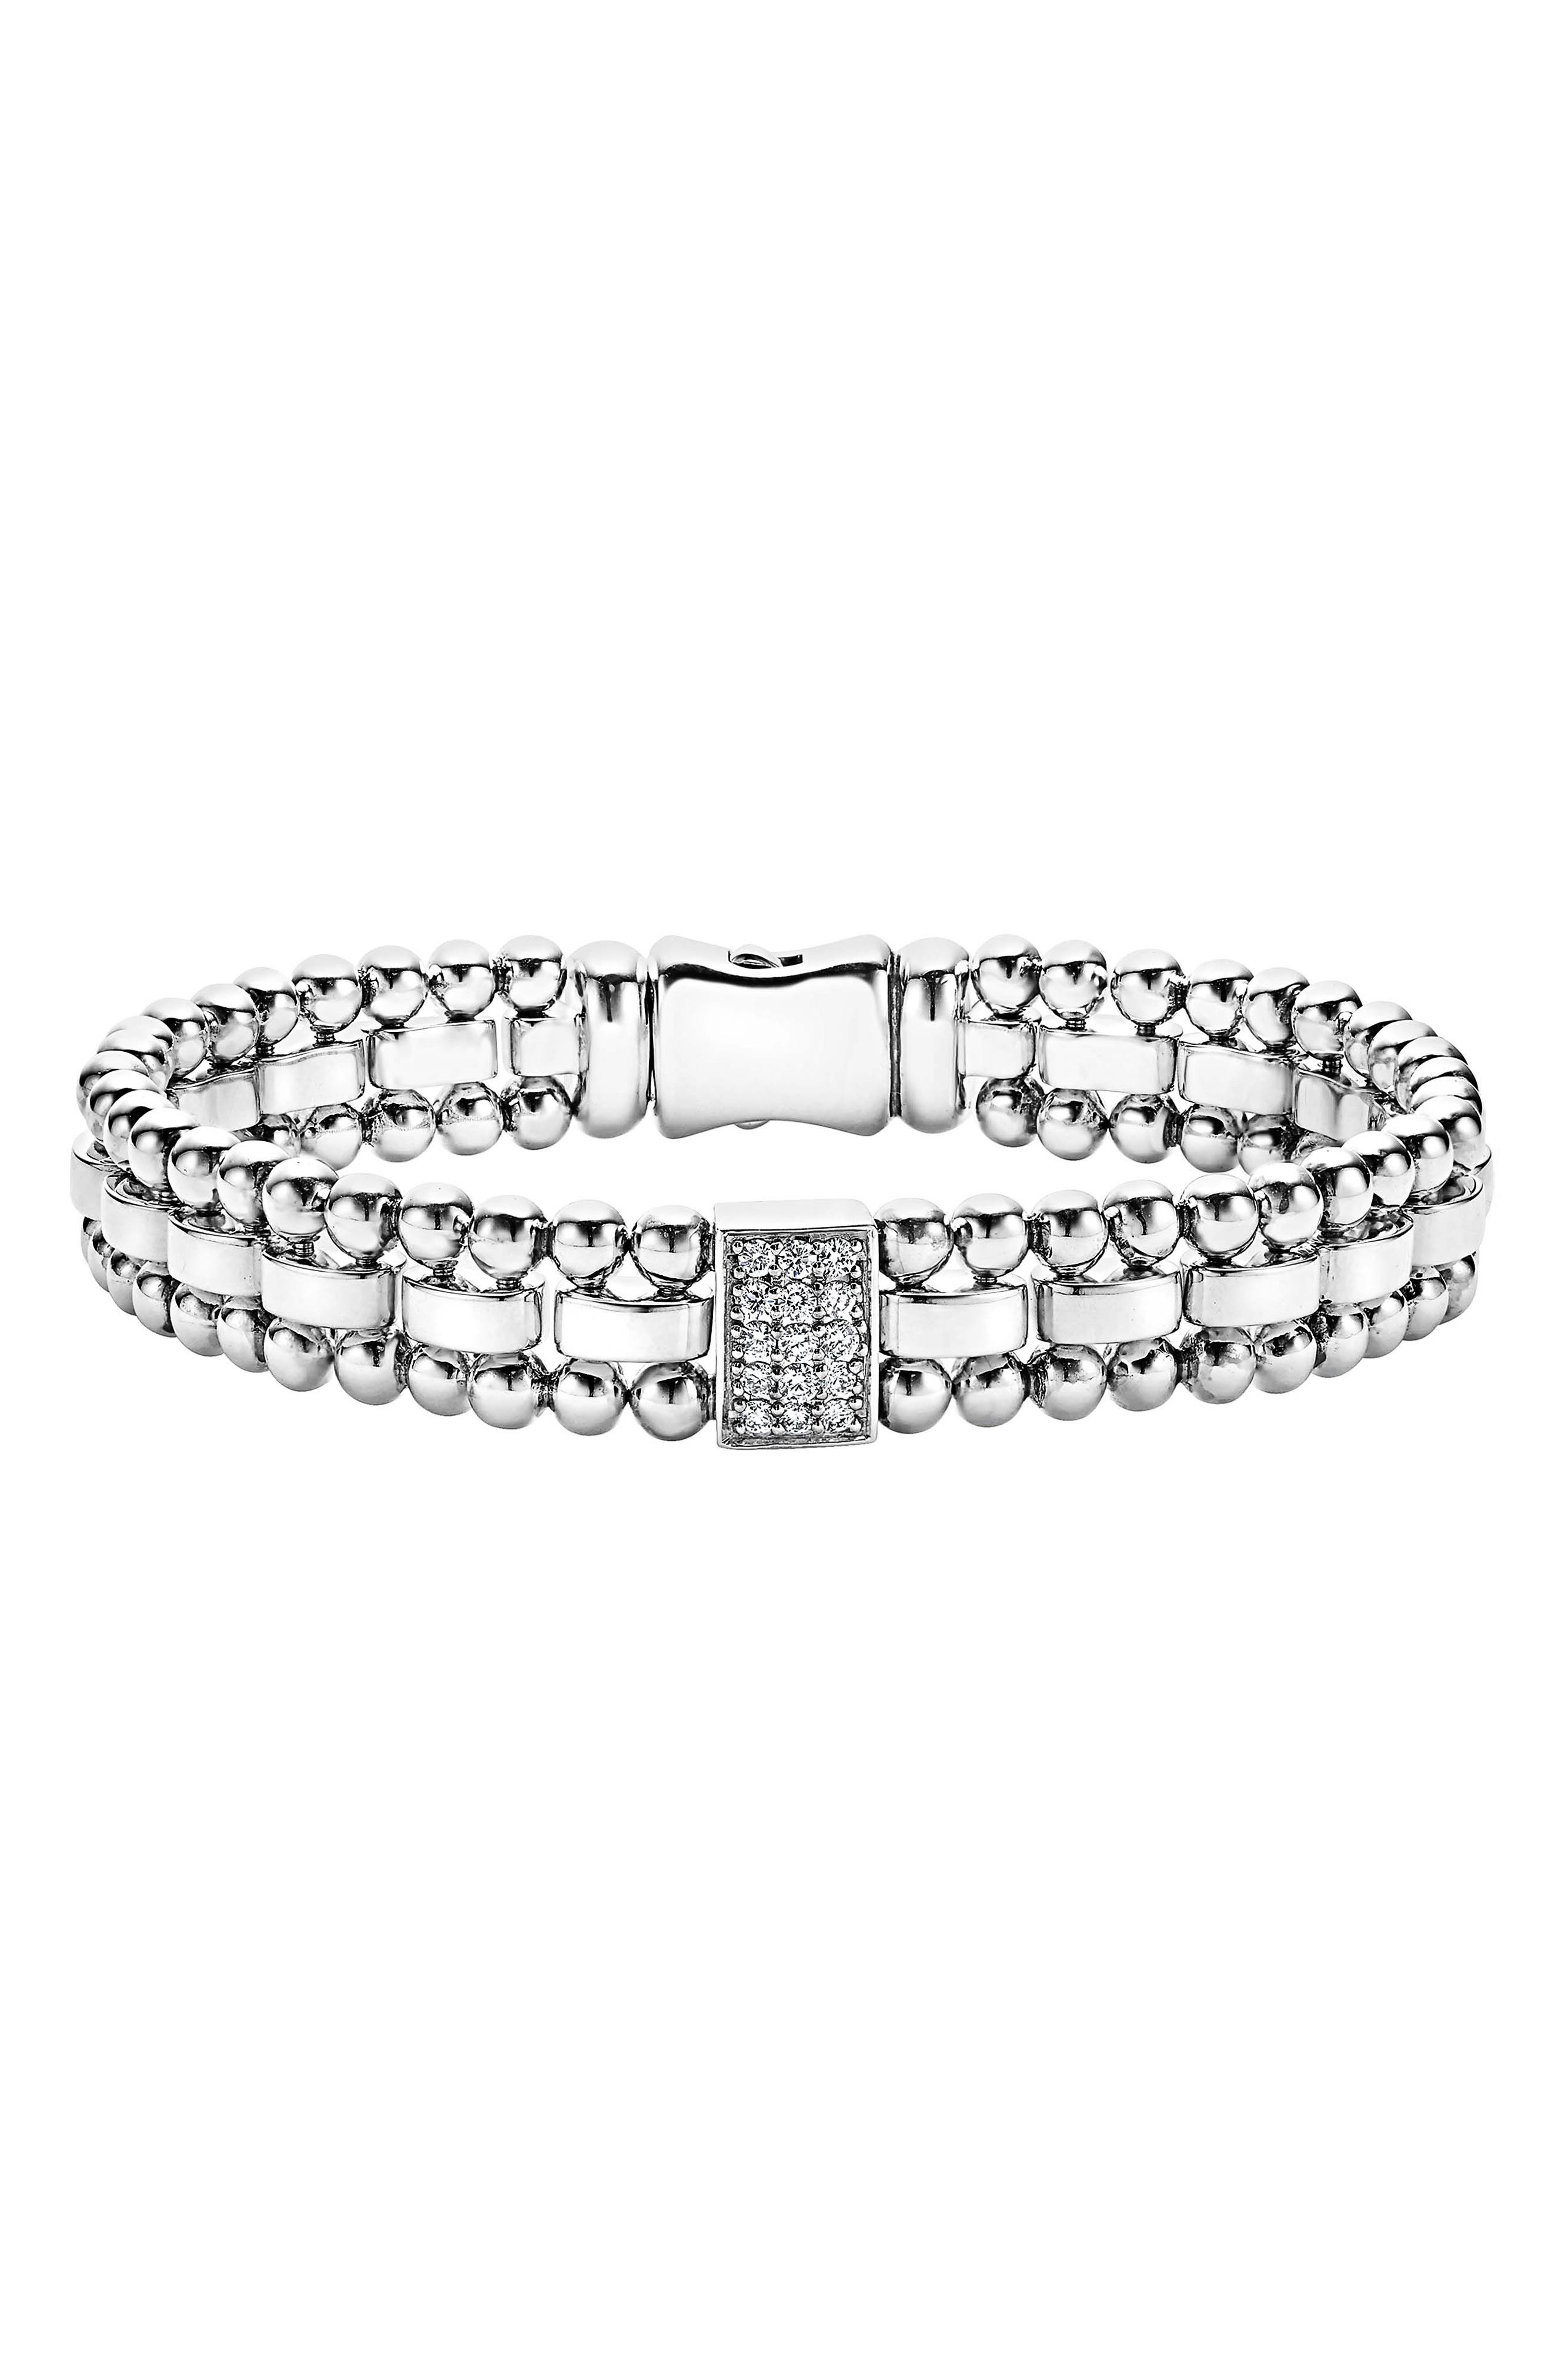 Caviar Spark Diamond Rectangle Link Bracelet,                             Main thumbnail 1, color,                             SILVER/ DIAMOND